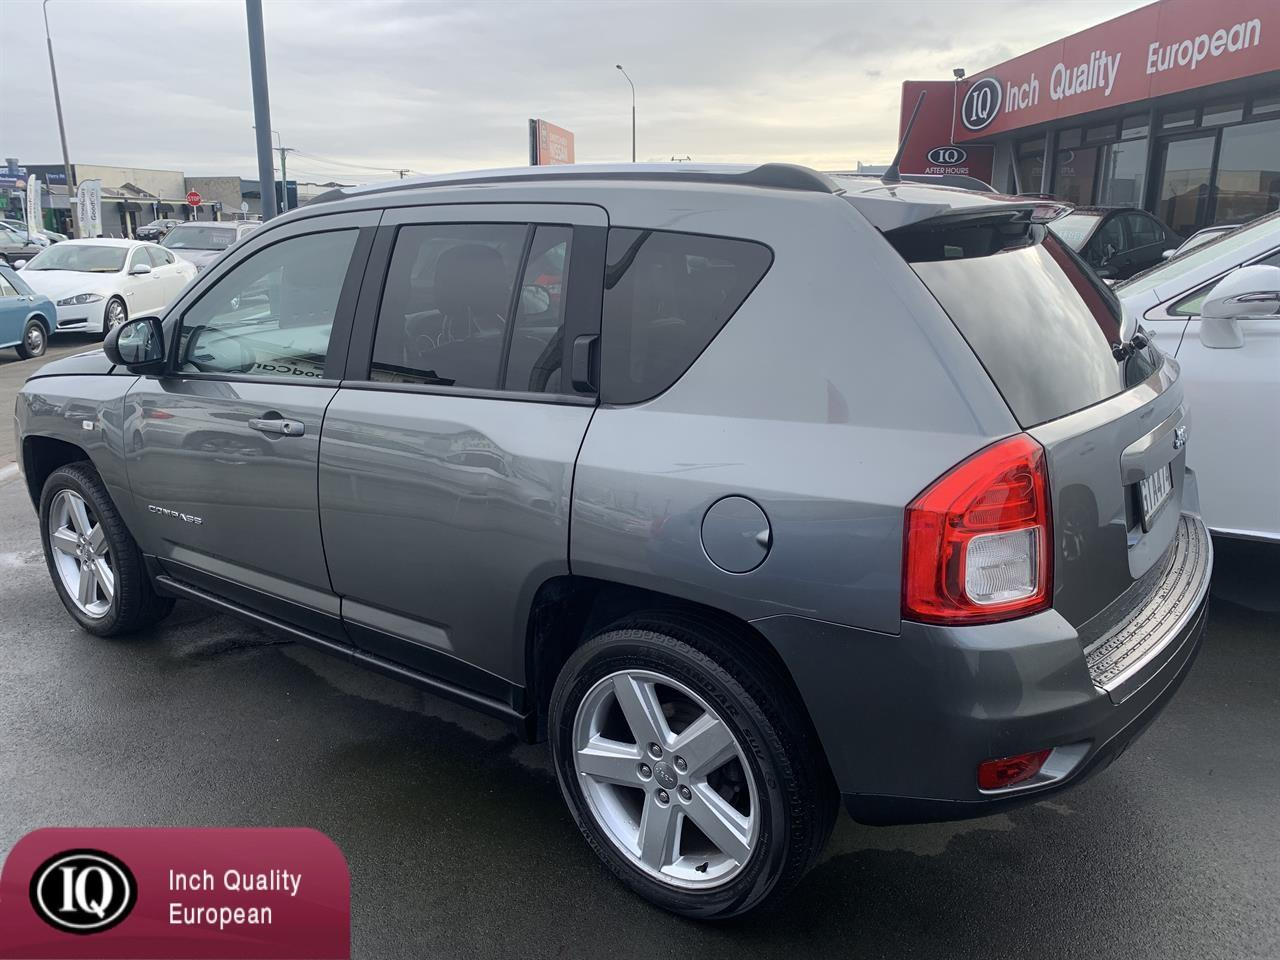 image-4, 2013 Jeep Compass 2.4 NZ NEW 4WD at Christchurch